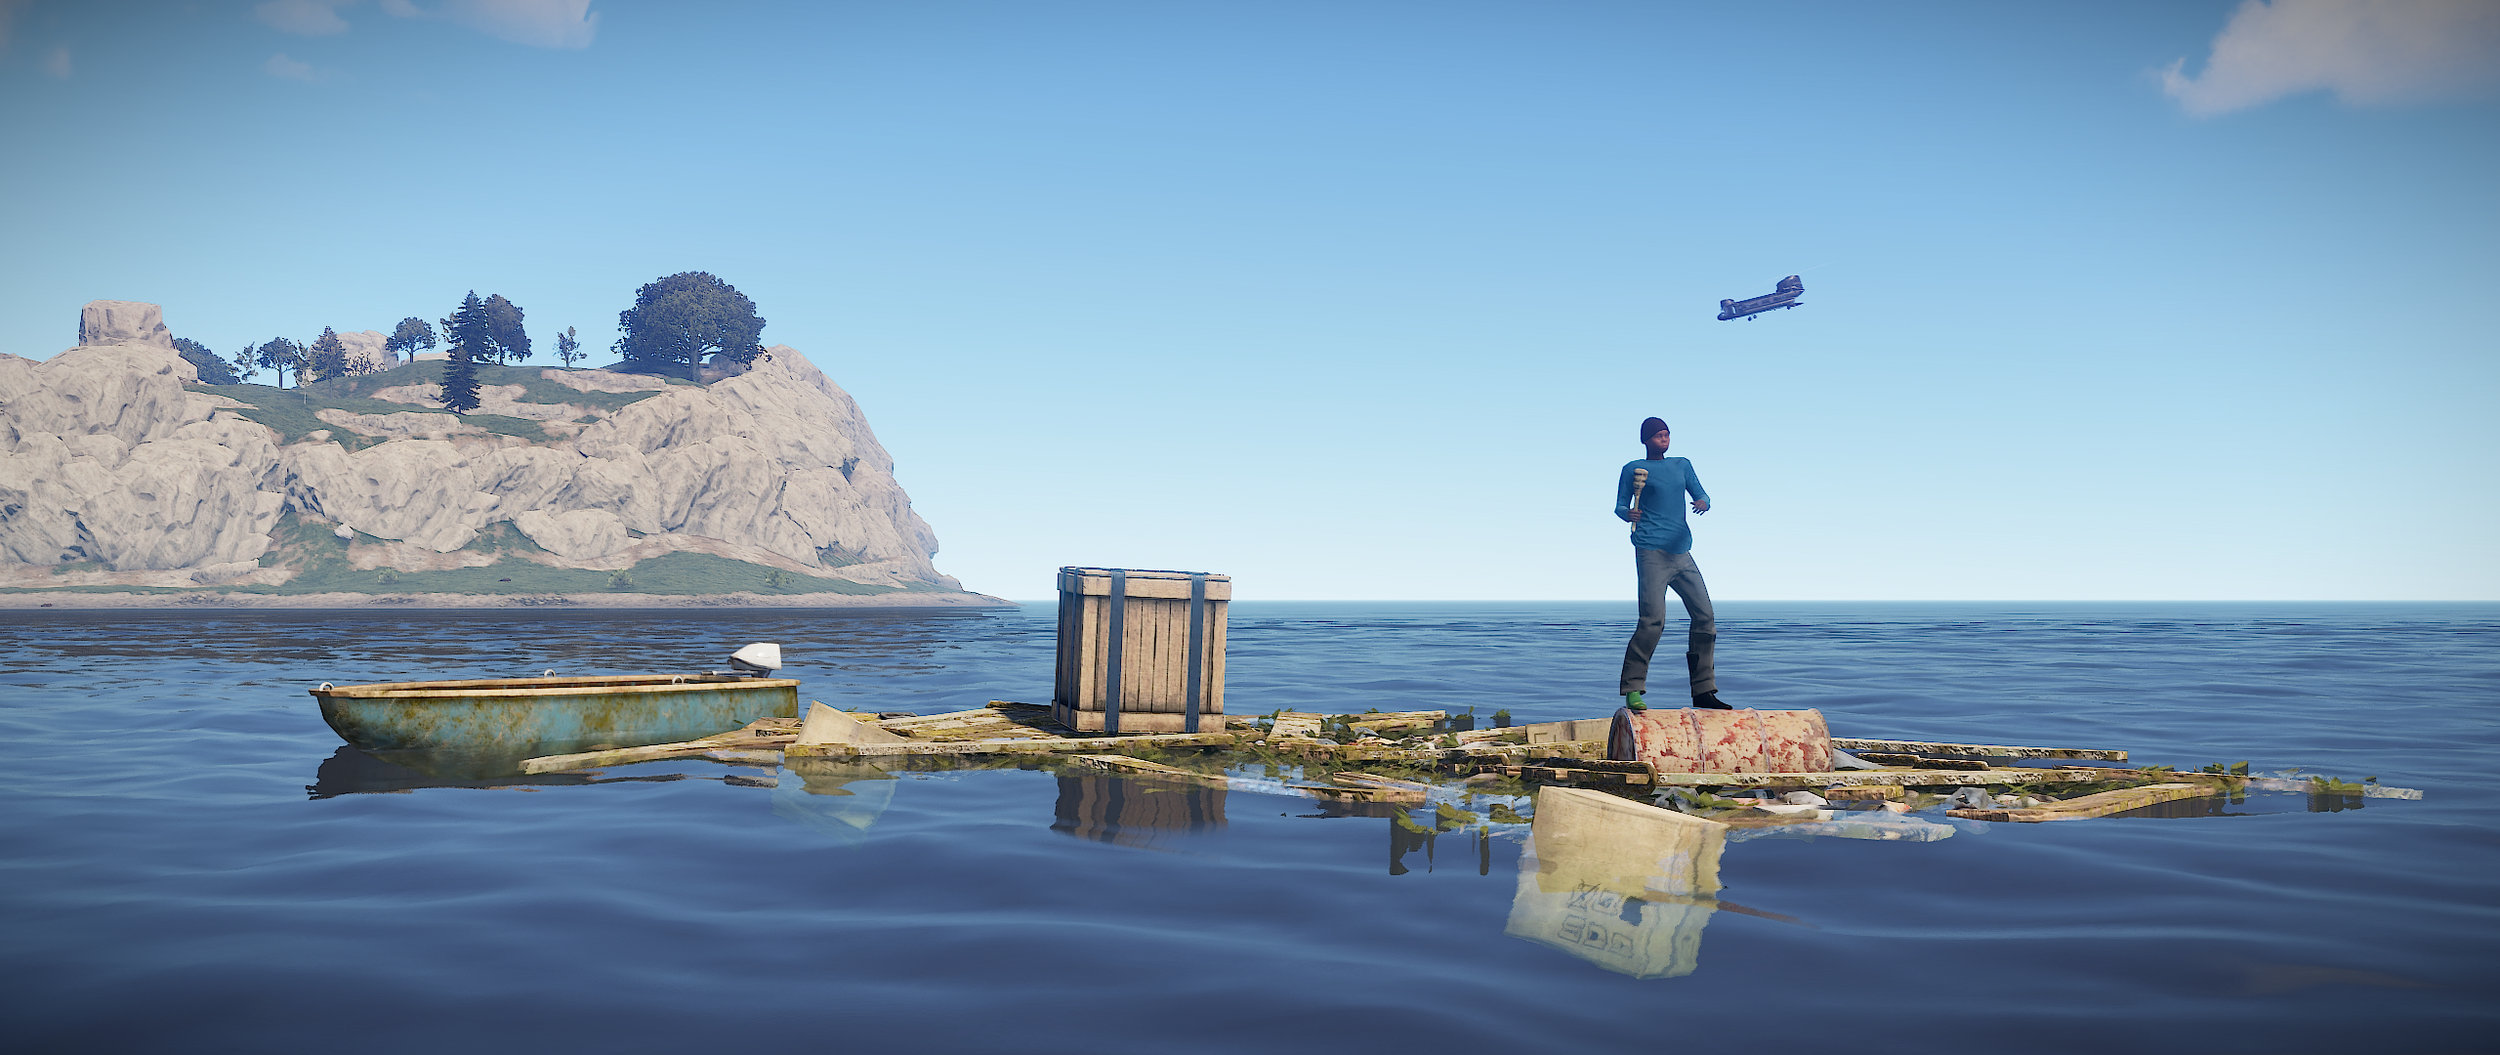 Boats, floating junkpiles, Chinook, map, scientists and more